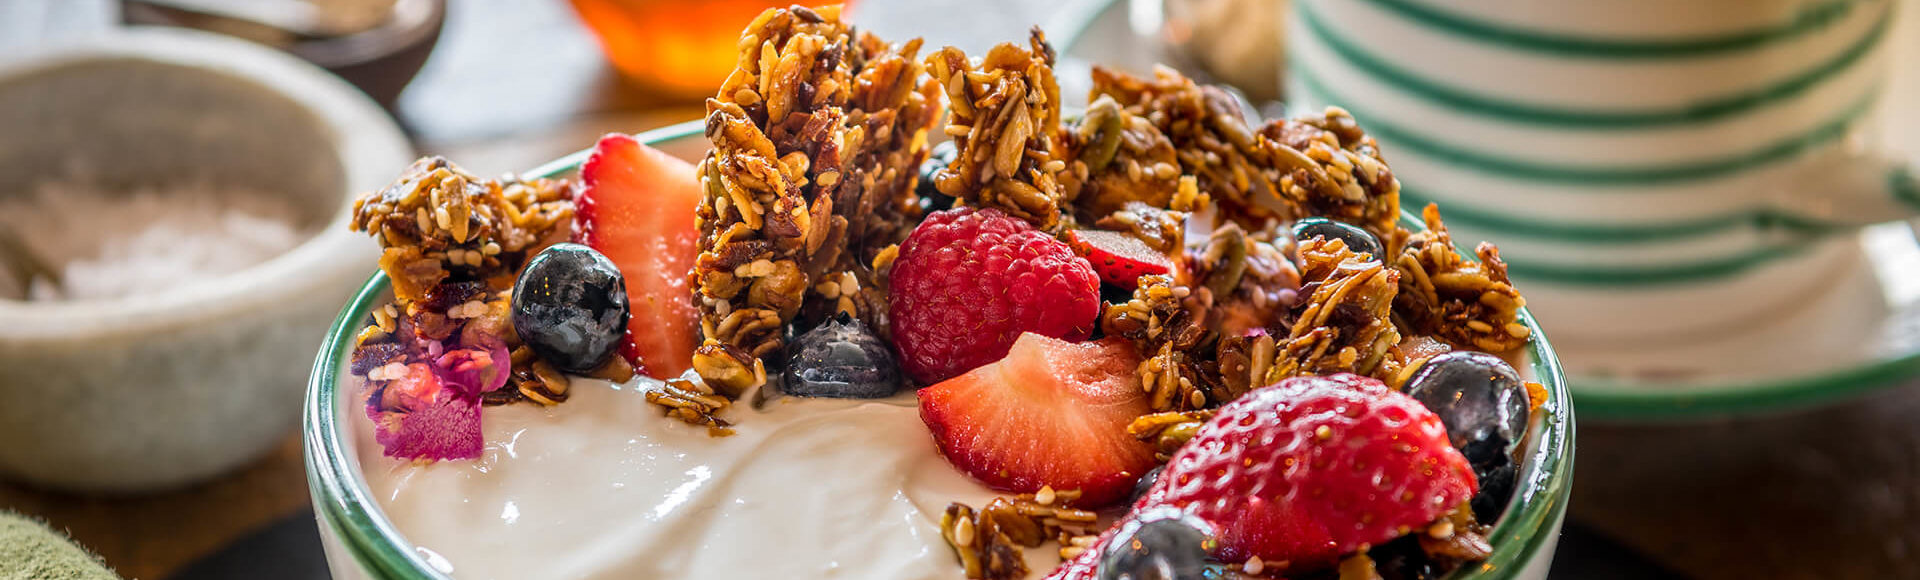 Fresh yogurt and granola served at breakfast